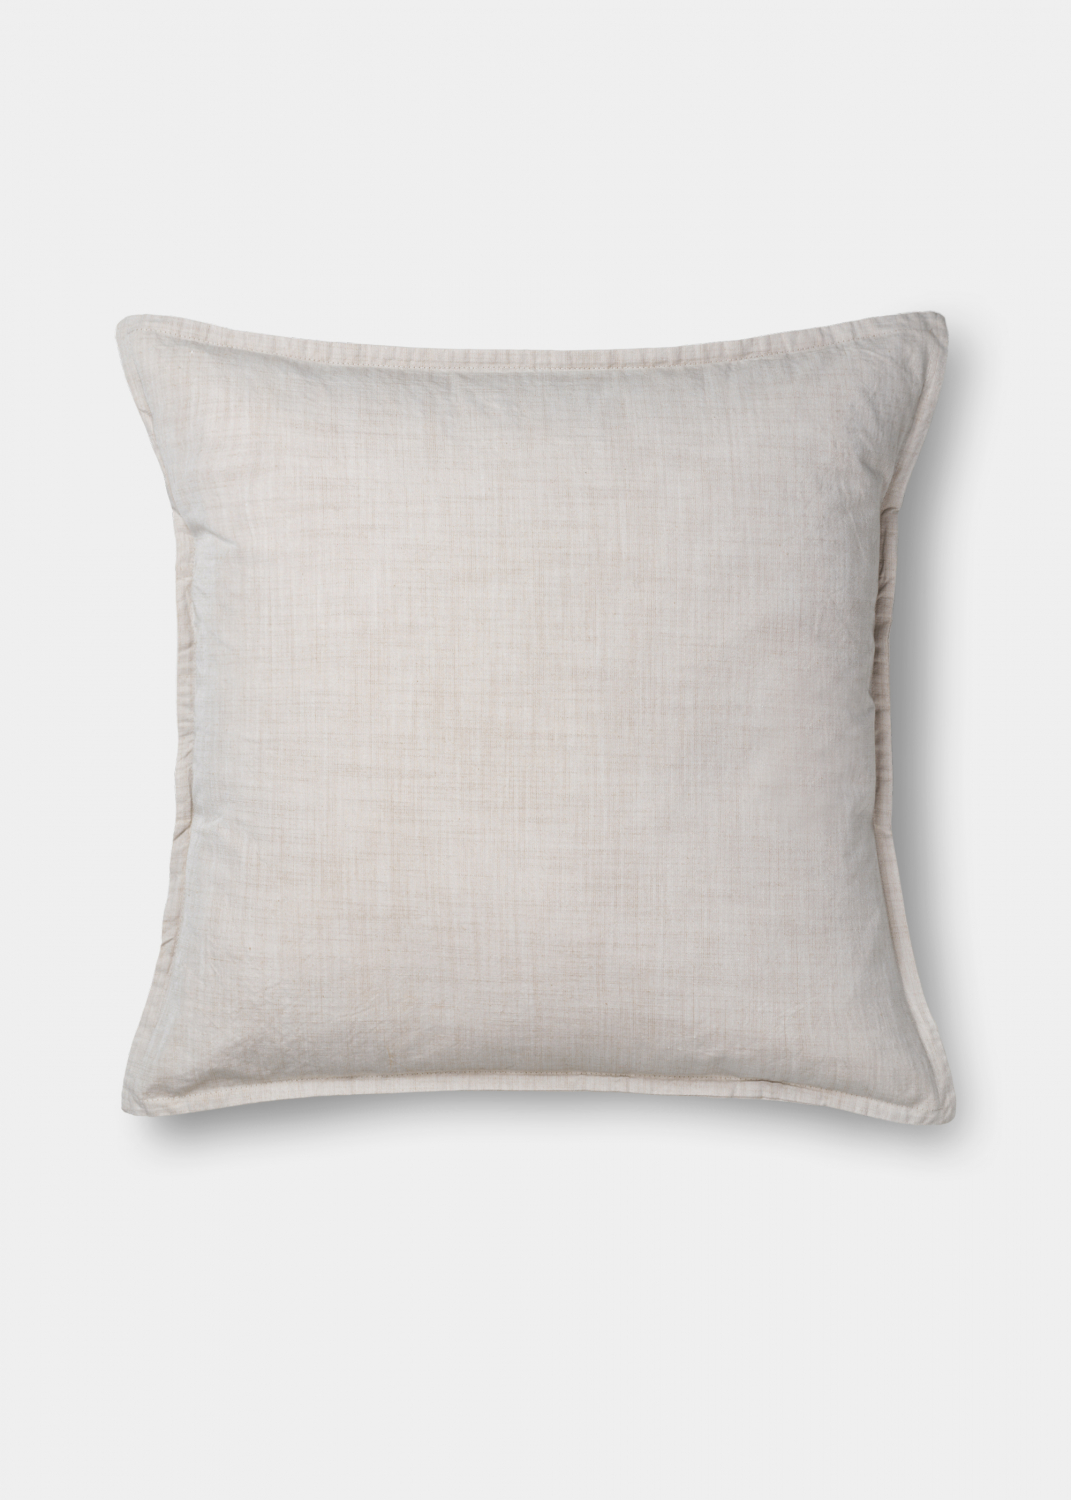 Puder - Pillow Cotton Slub (50x50) Thumbnail